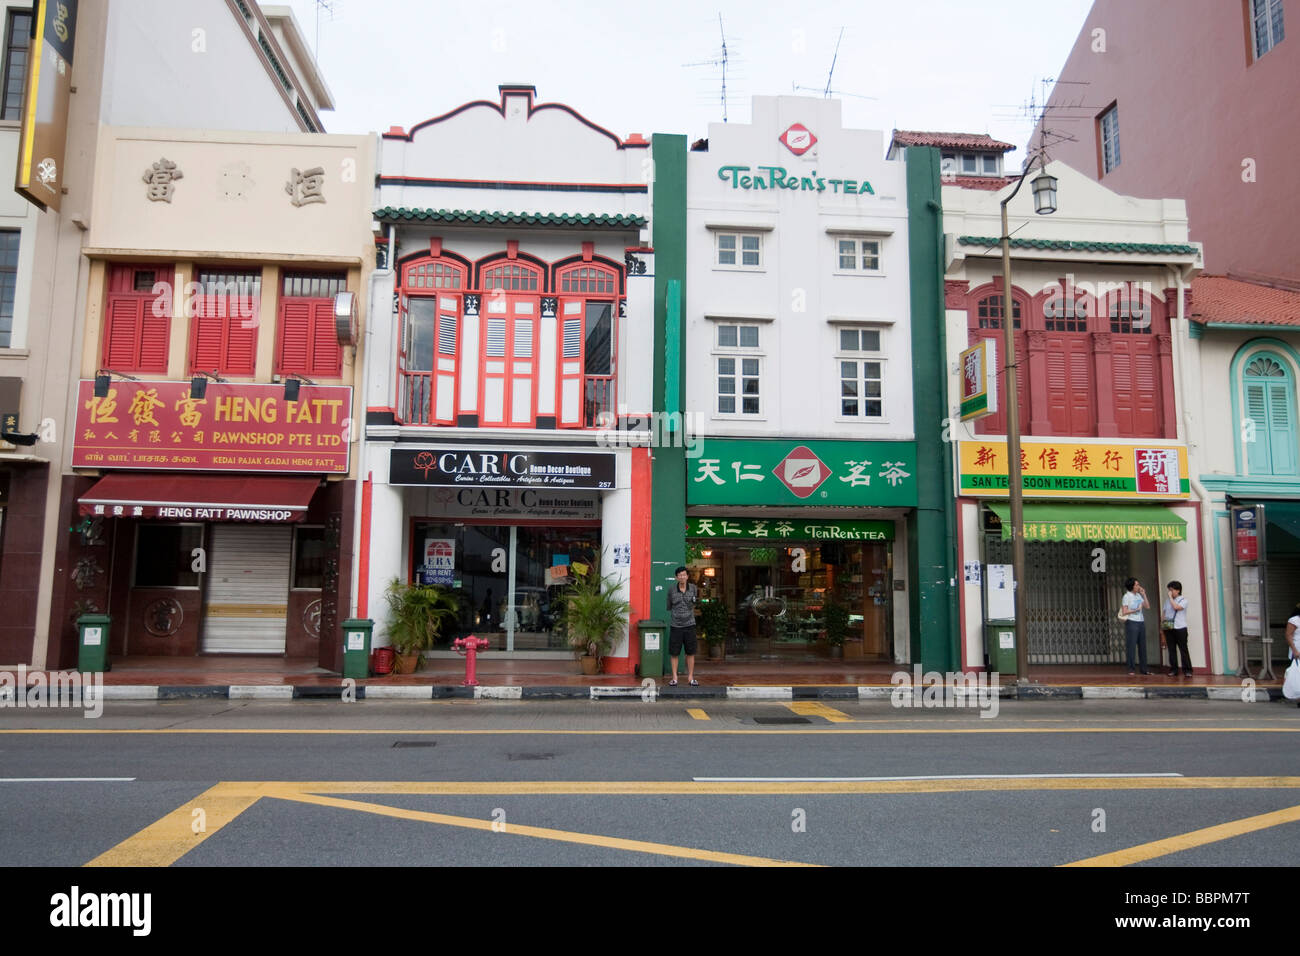 Chinatown, South Bridge Road, Singapur, Südostasien Stockfoto